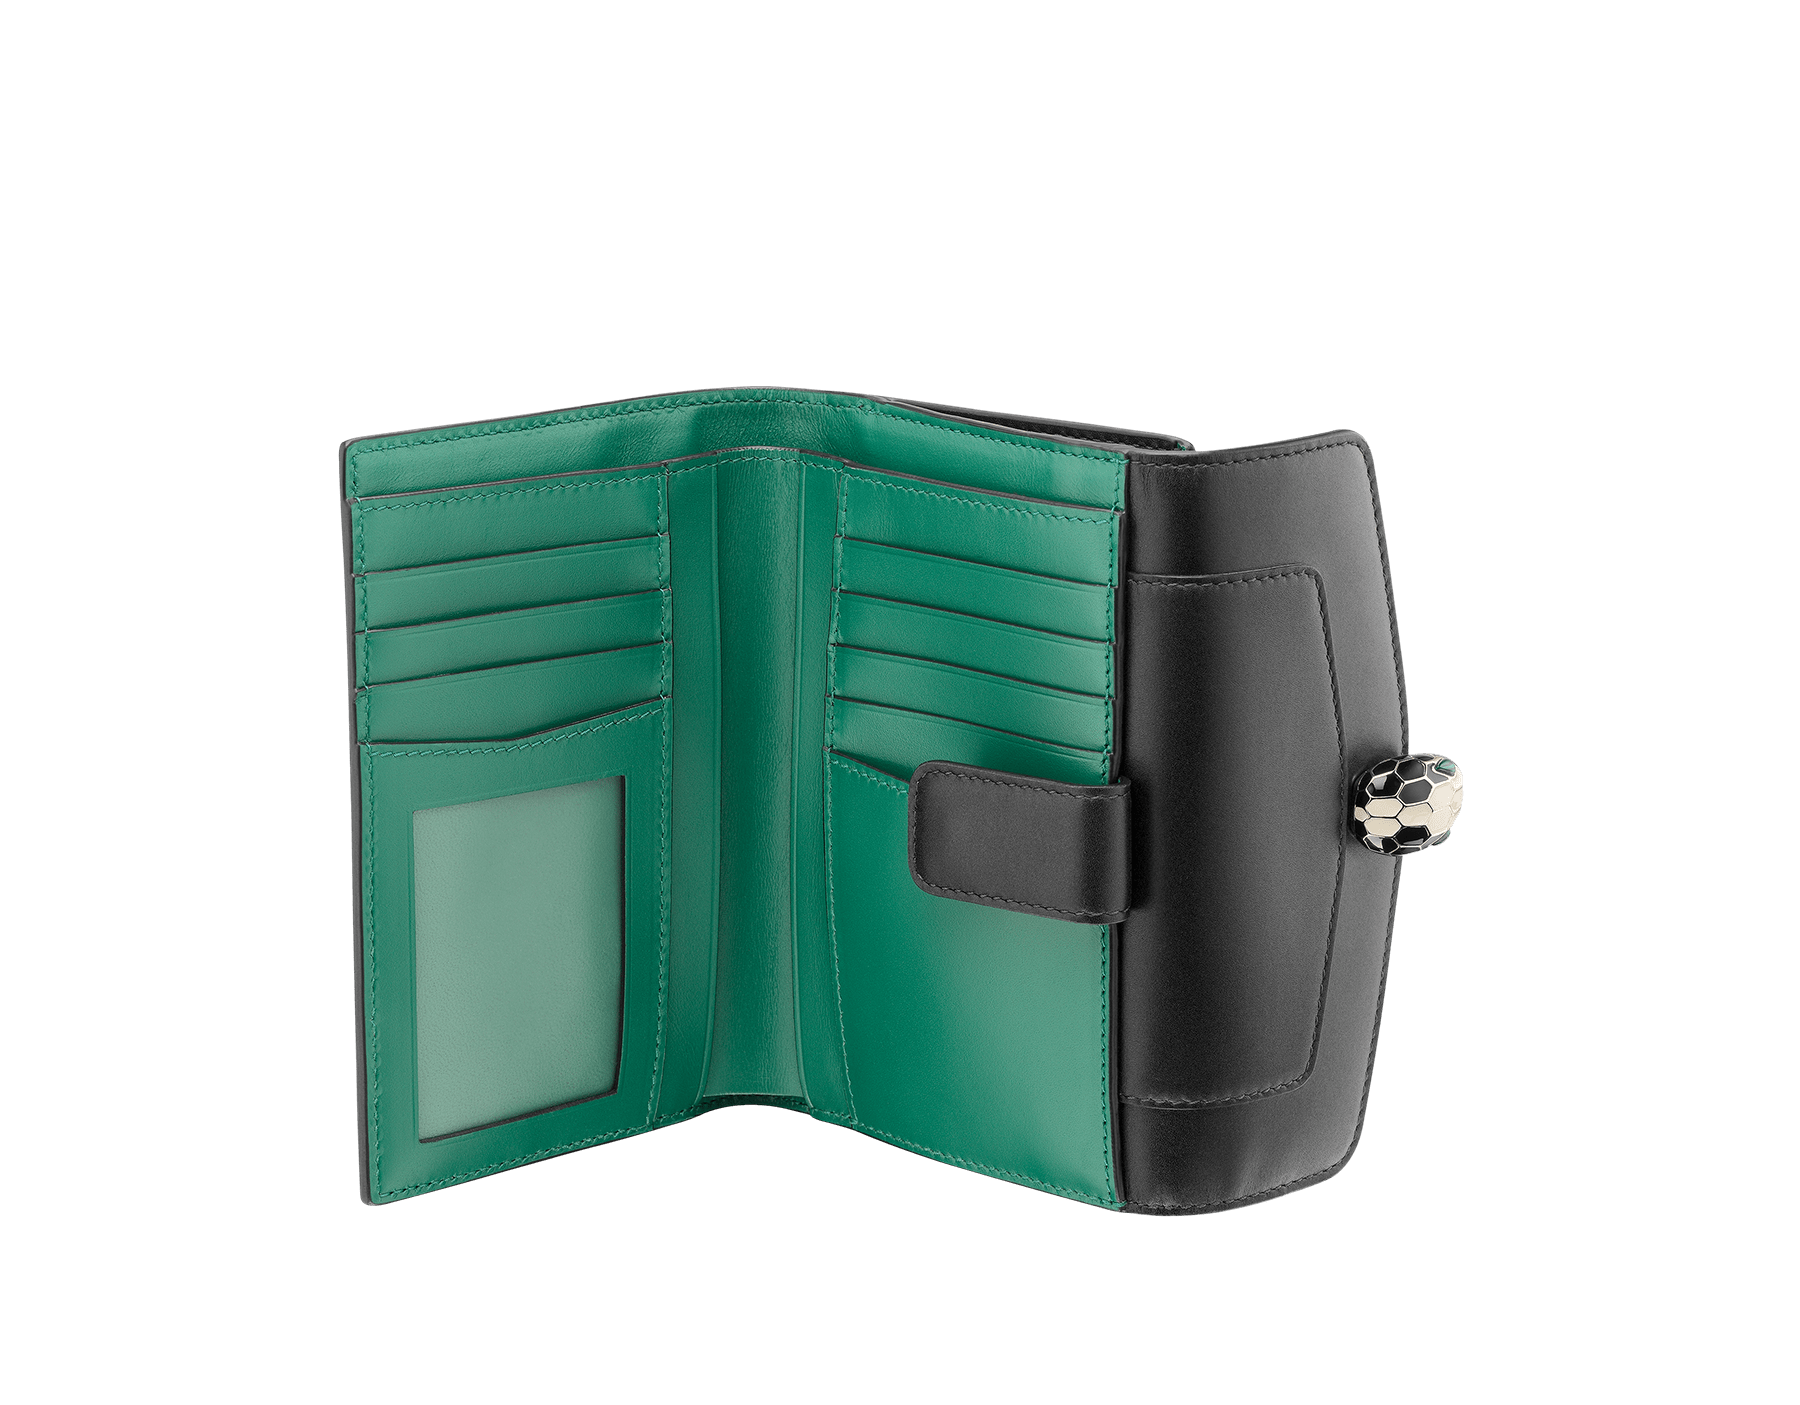 Compact pochette in black calf leather, emerald green calf leather and malachite nappa lining. Brass light gold plated Serpenti head stud closure with green malachite eyes. 282664 image 2